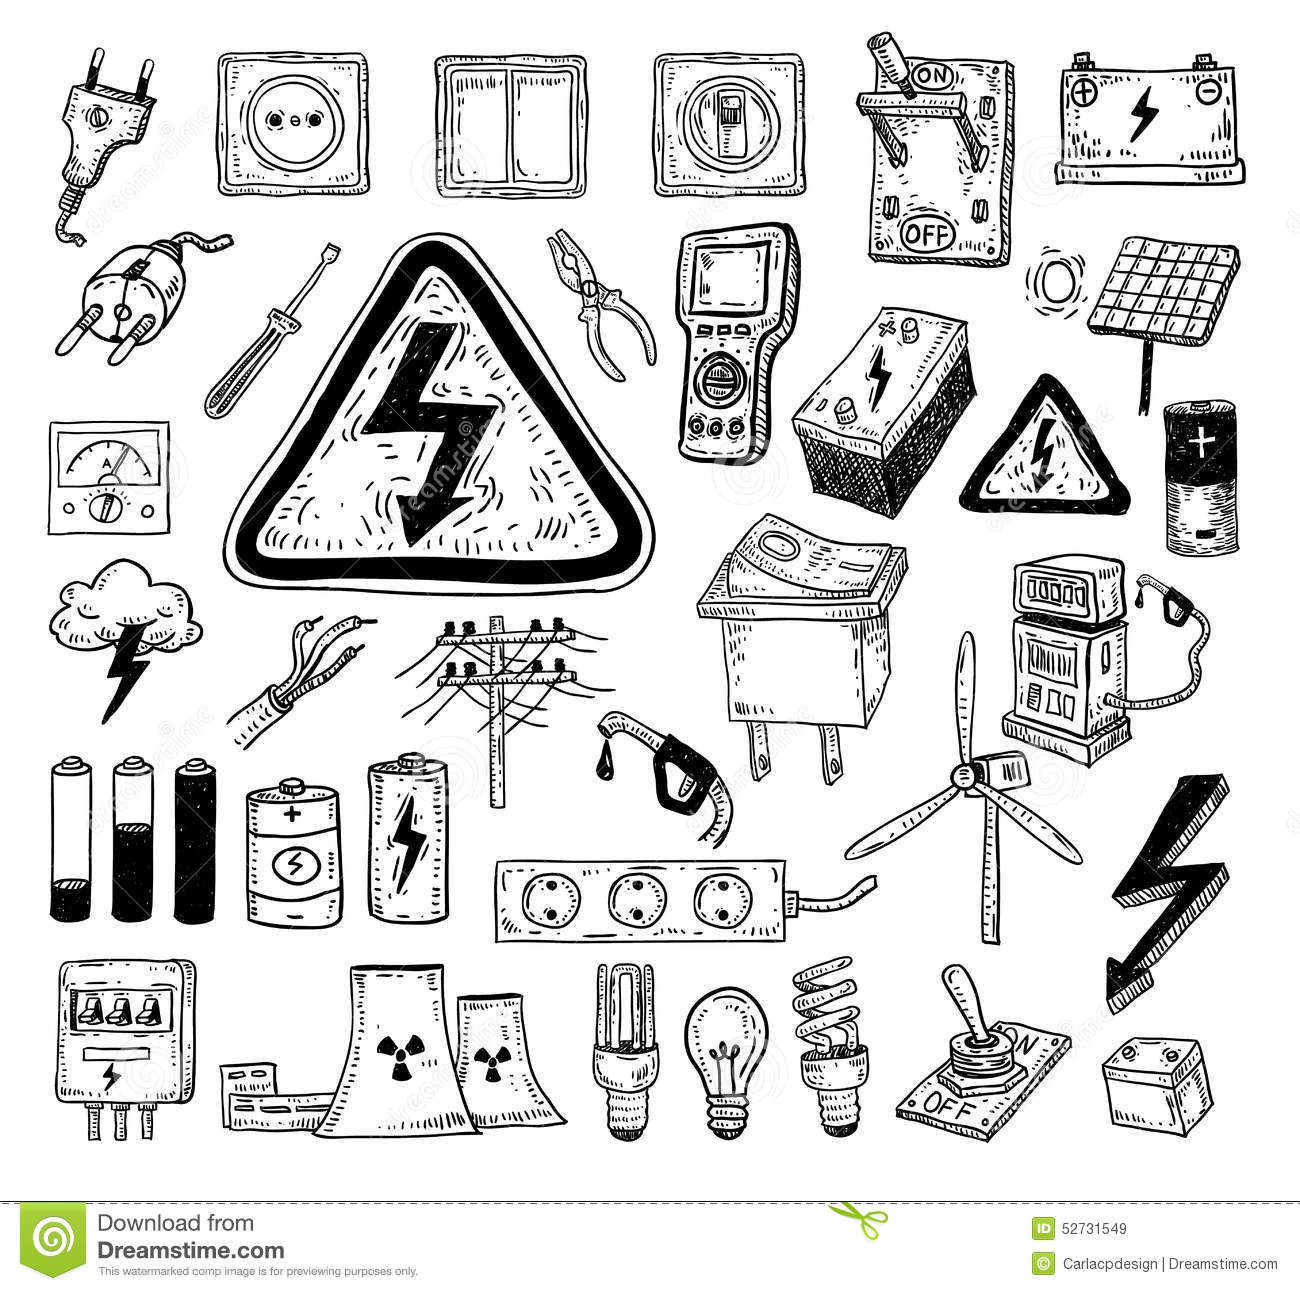 Electricity Doodle Icon Collection Vector Illustration